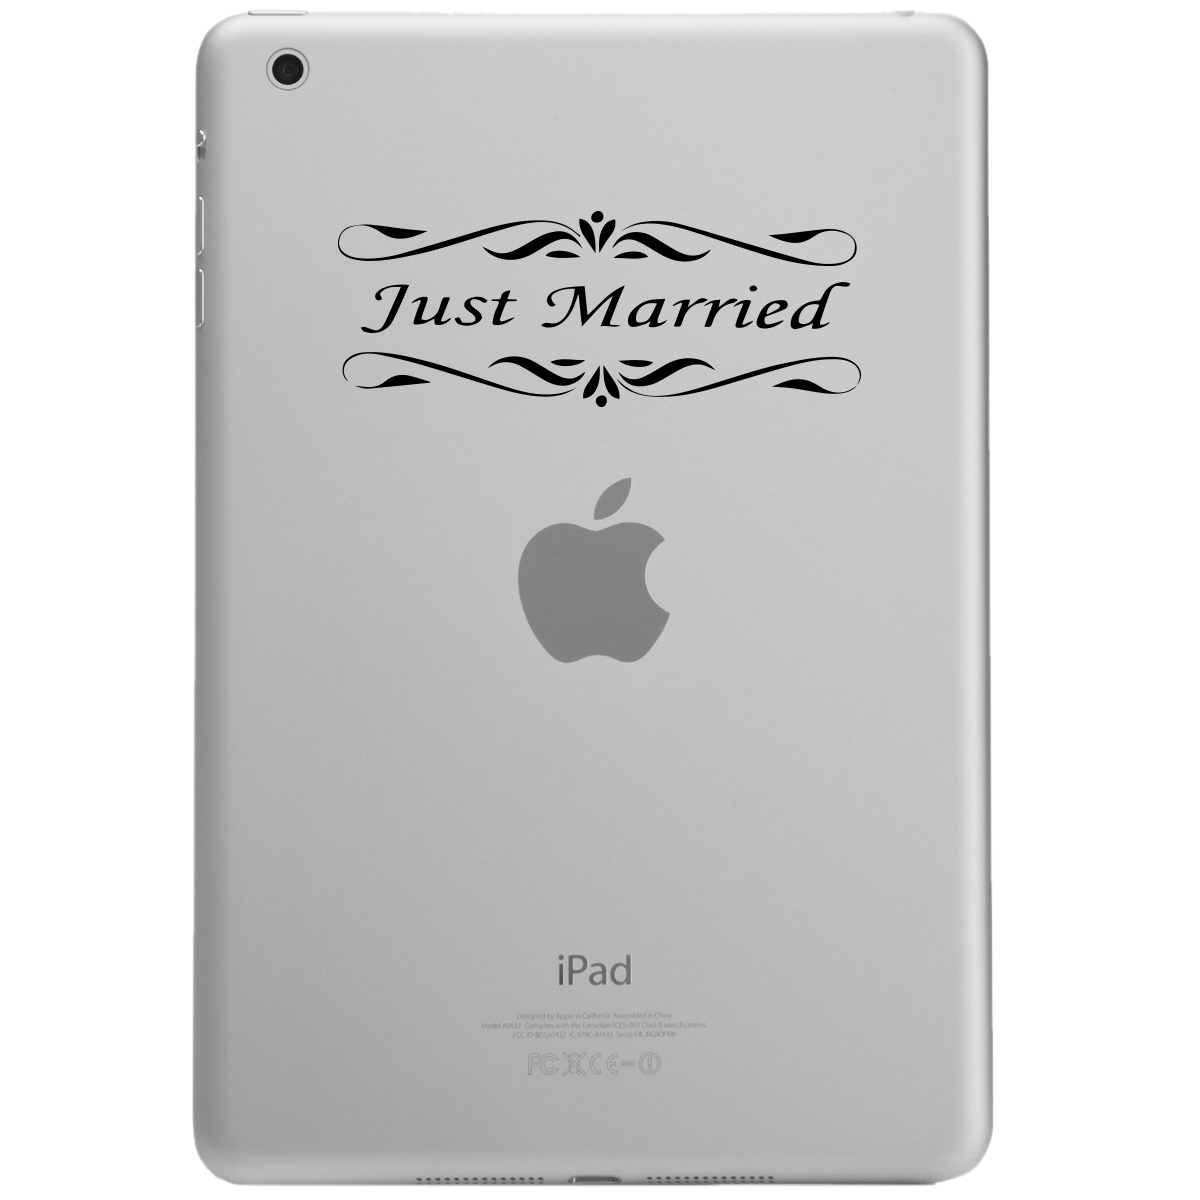 Just Married Bride Groom Wedding iPad Tablet Vinyl Sticker Decal